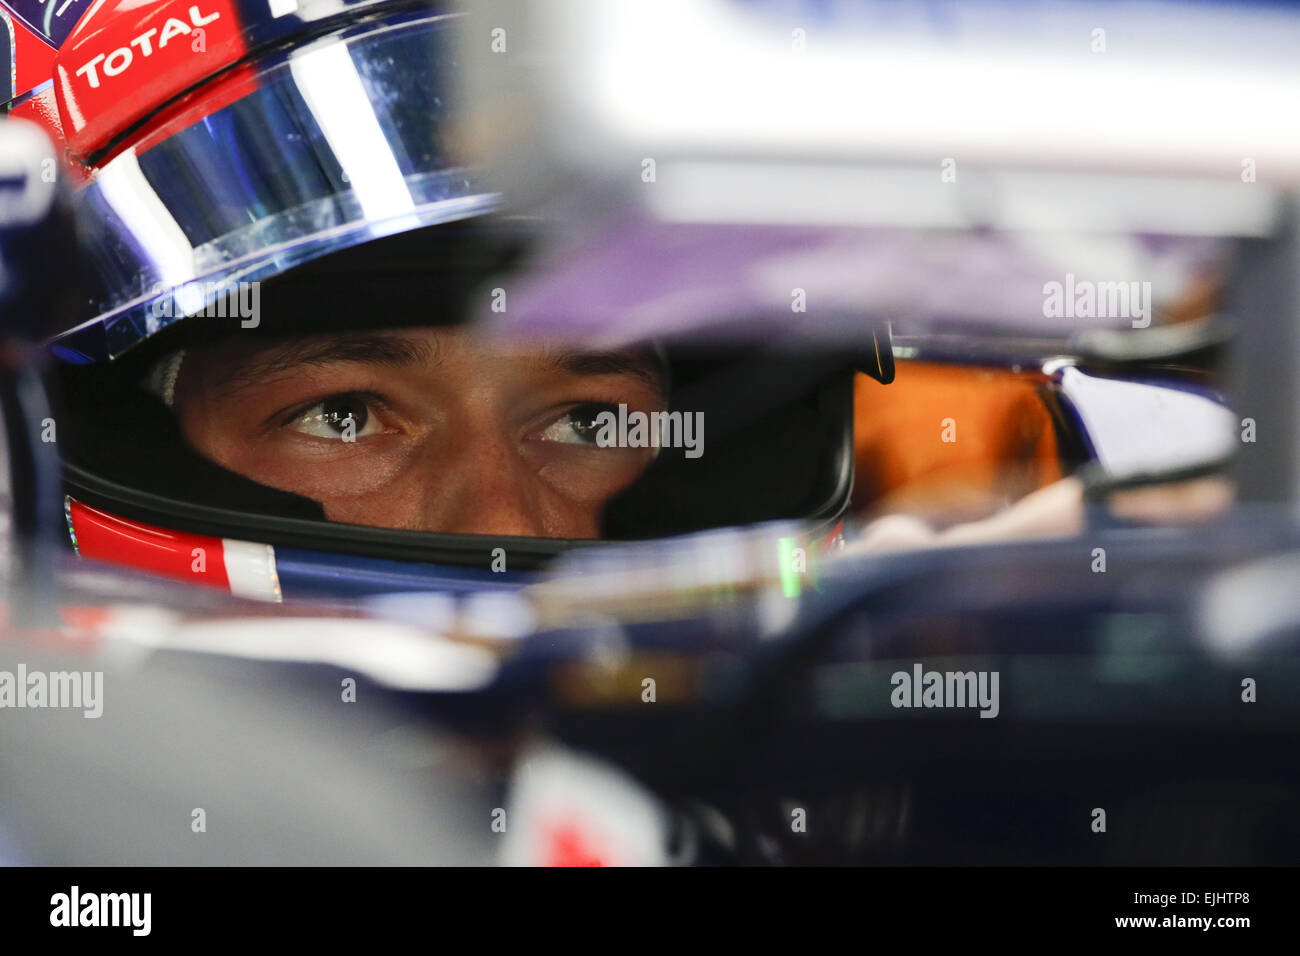 Sepang, Malaysia. 27th Mar, 2015. DANIIL KVYAT of Russia and Infiniti Red Bull Racing is seen in sitting in the Stock Photo